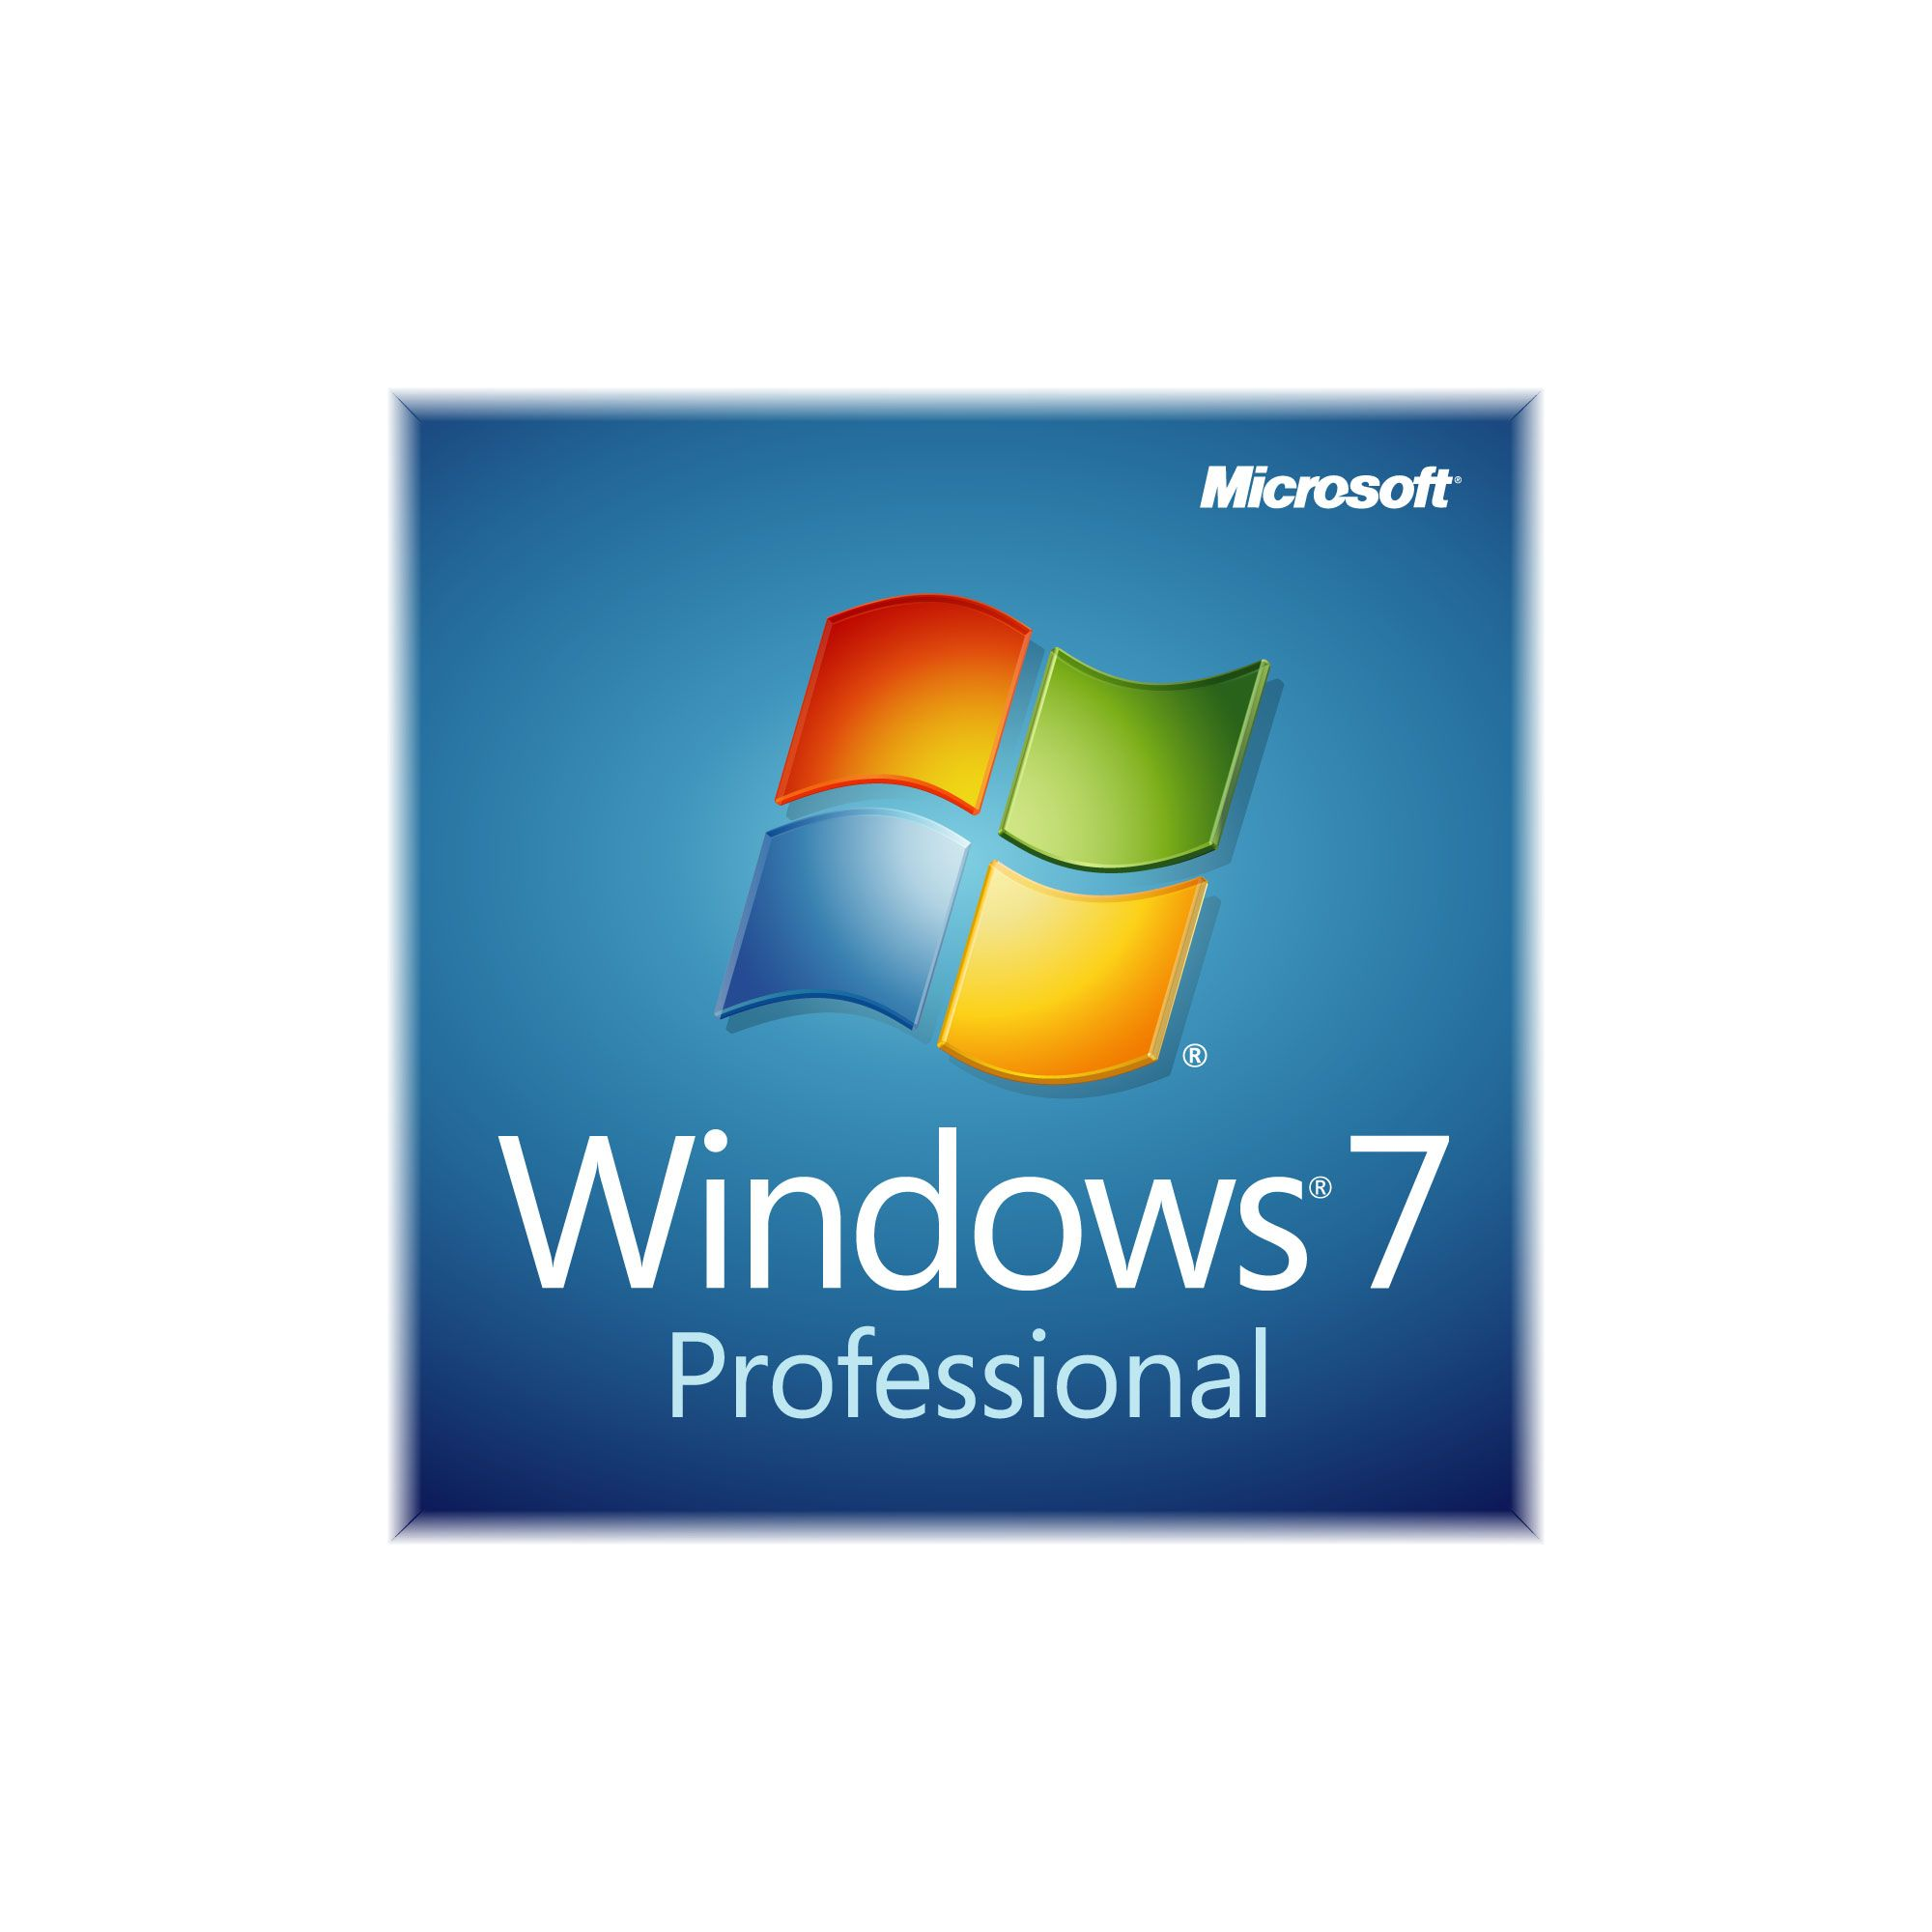 Microsoft Windows 7 Professional at Tesco Direct